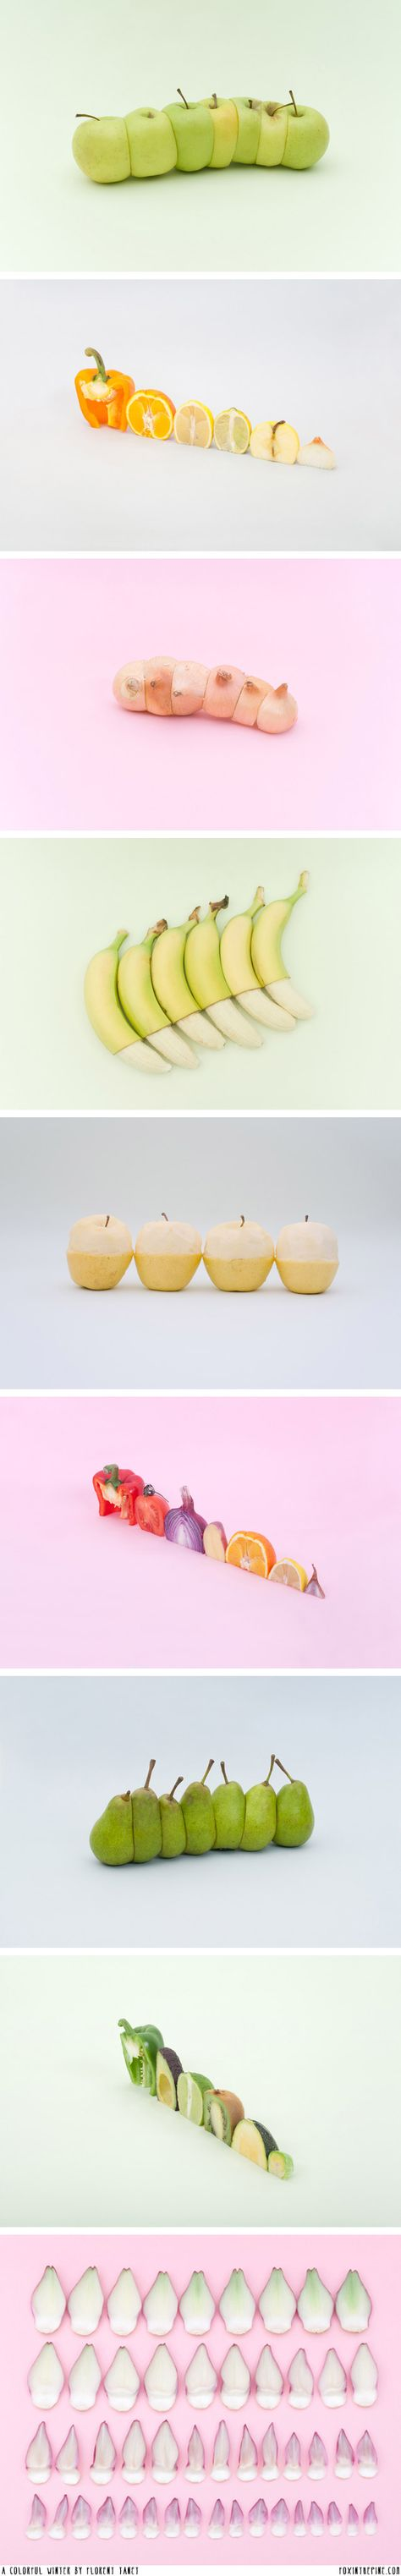 Food Photography- Painting food and rearranging/ cutting/ sorting different food artistically.